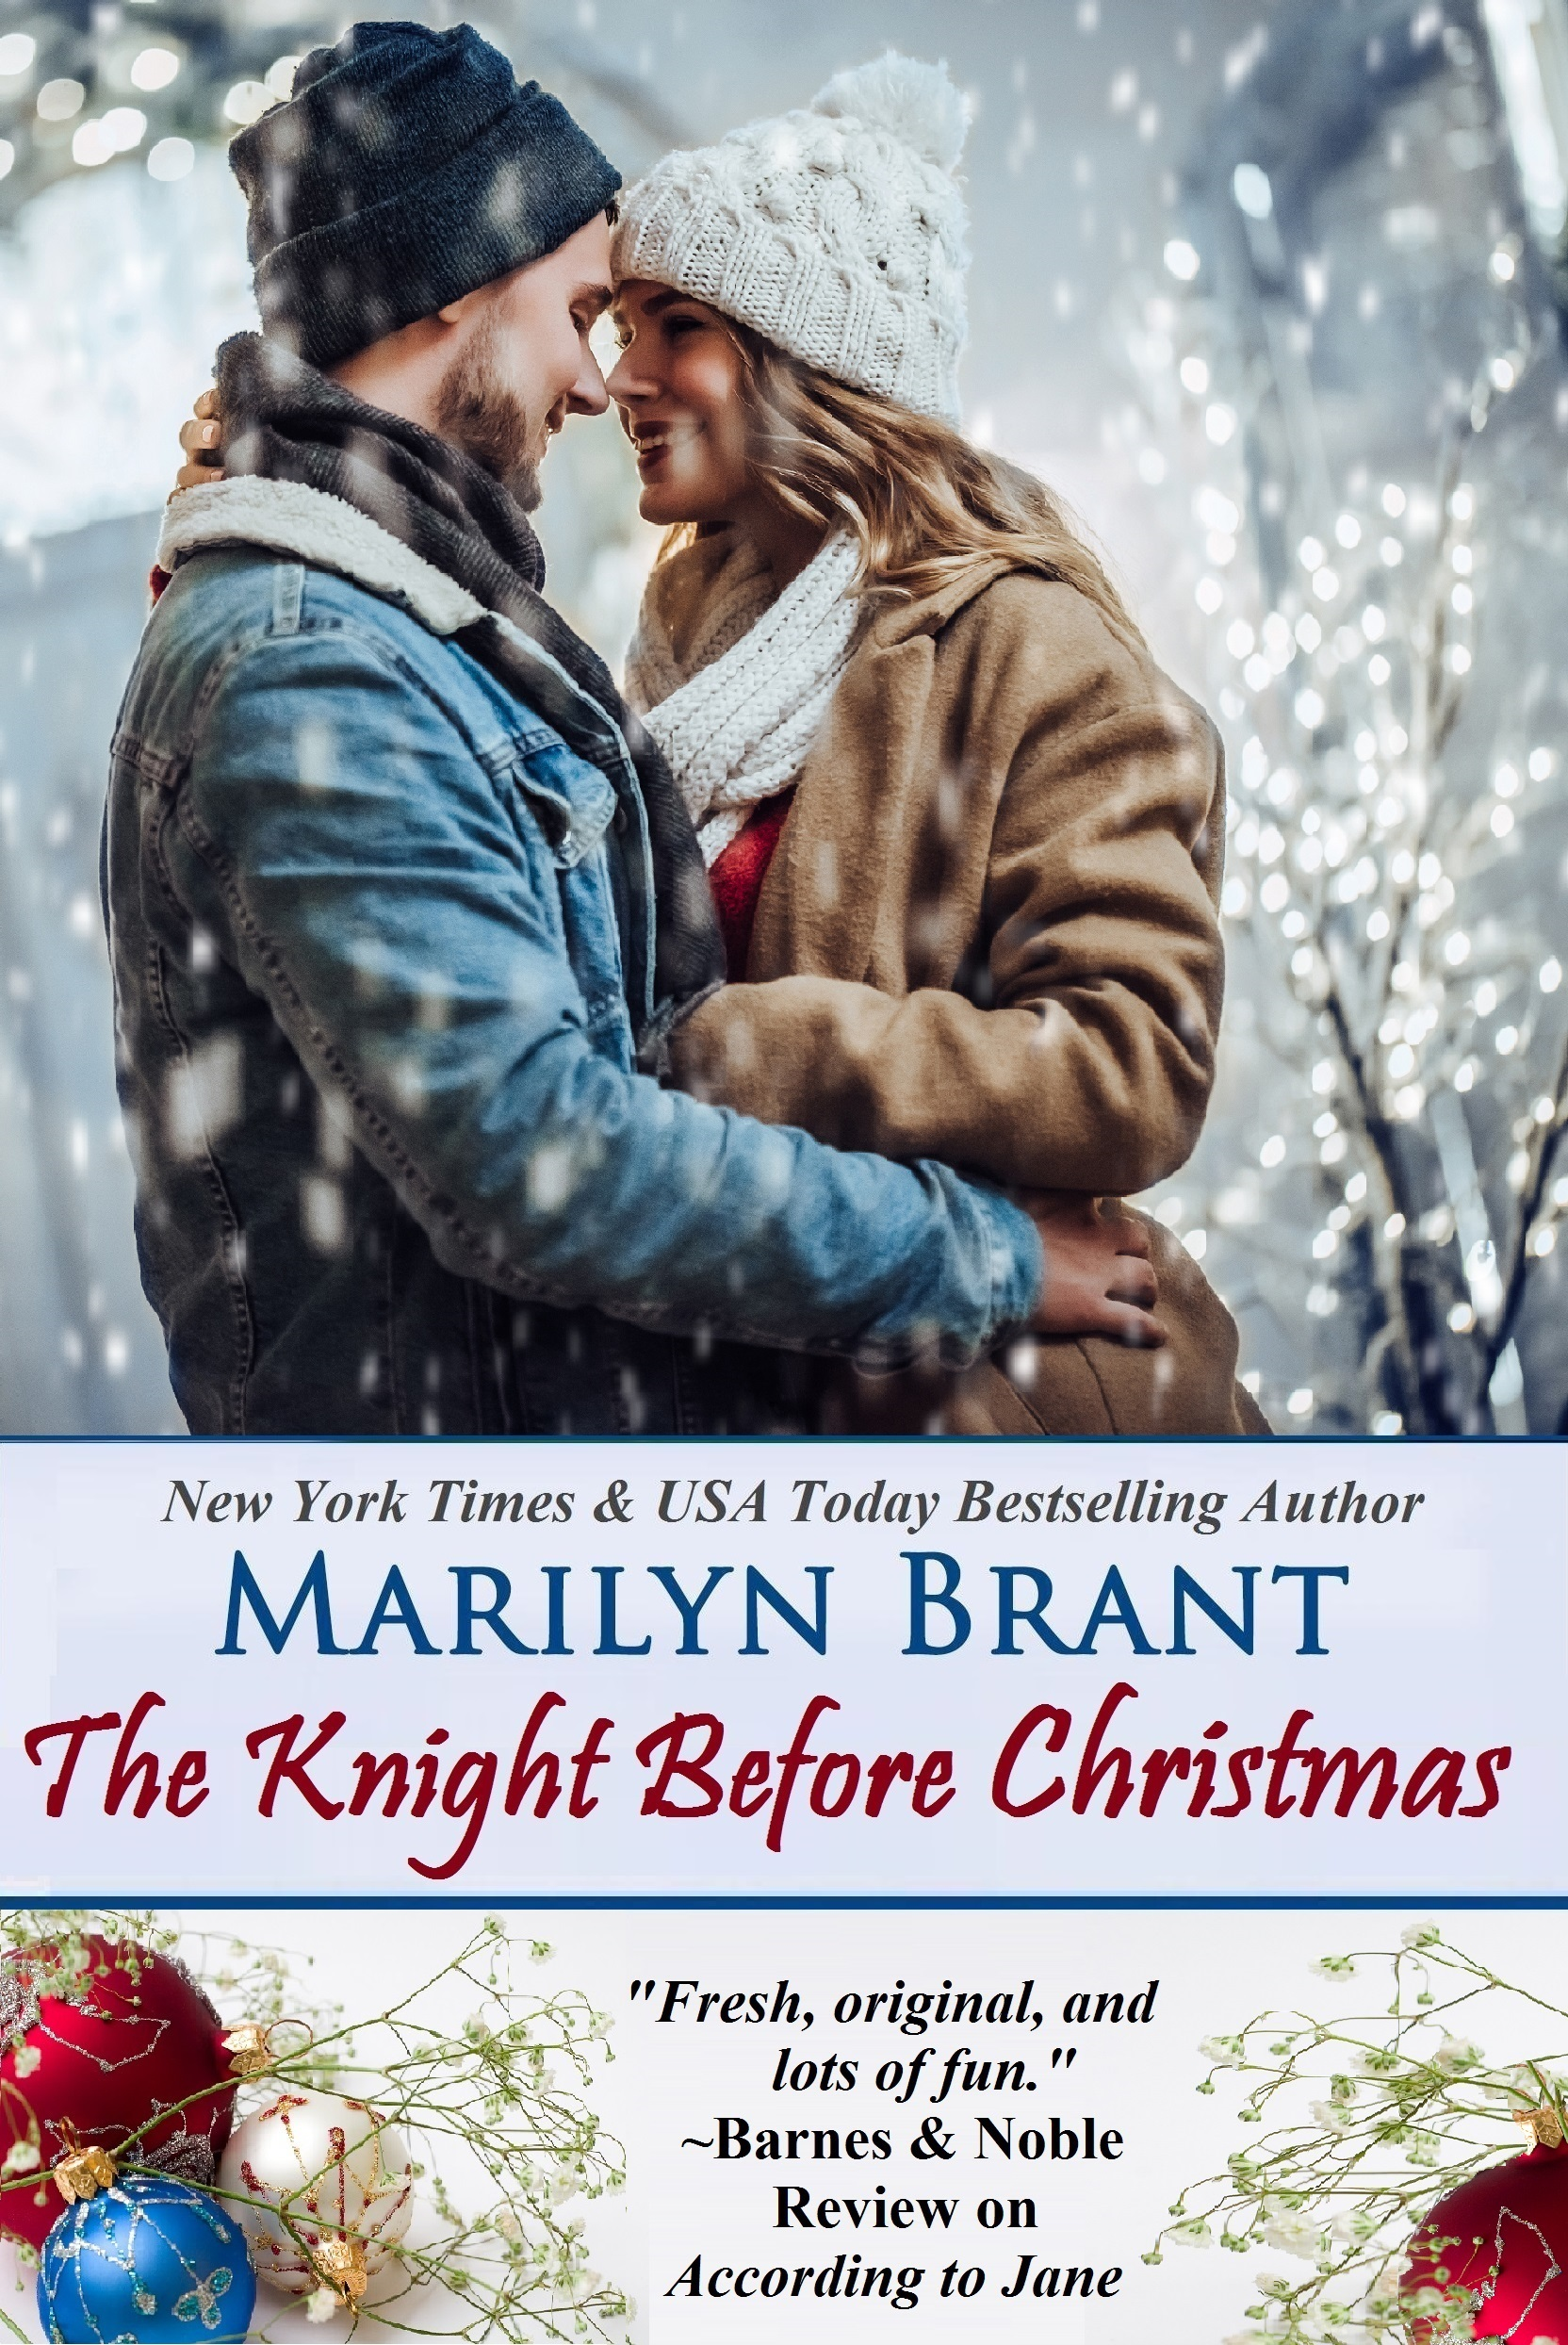 The Knight Before Christmas, by Marilyn Brant (2019)